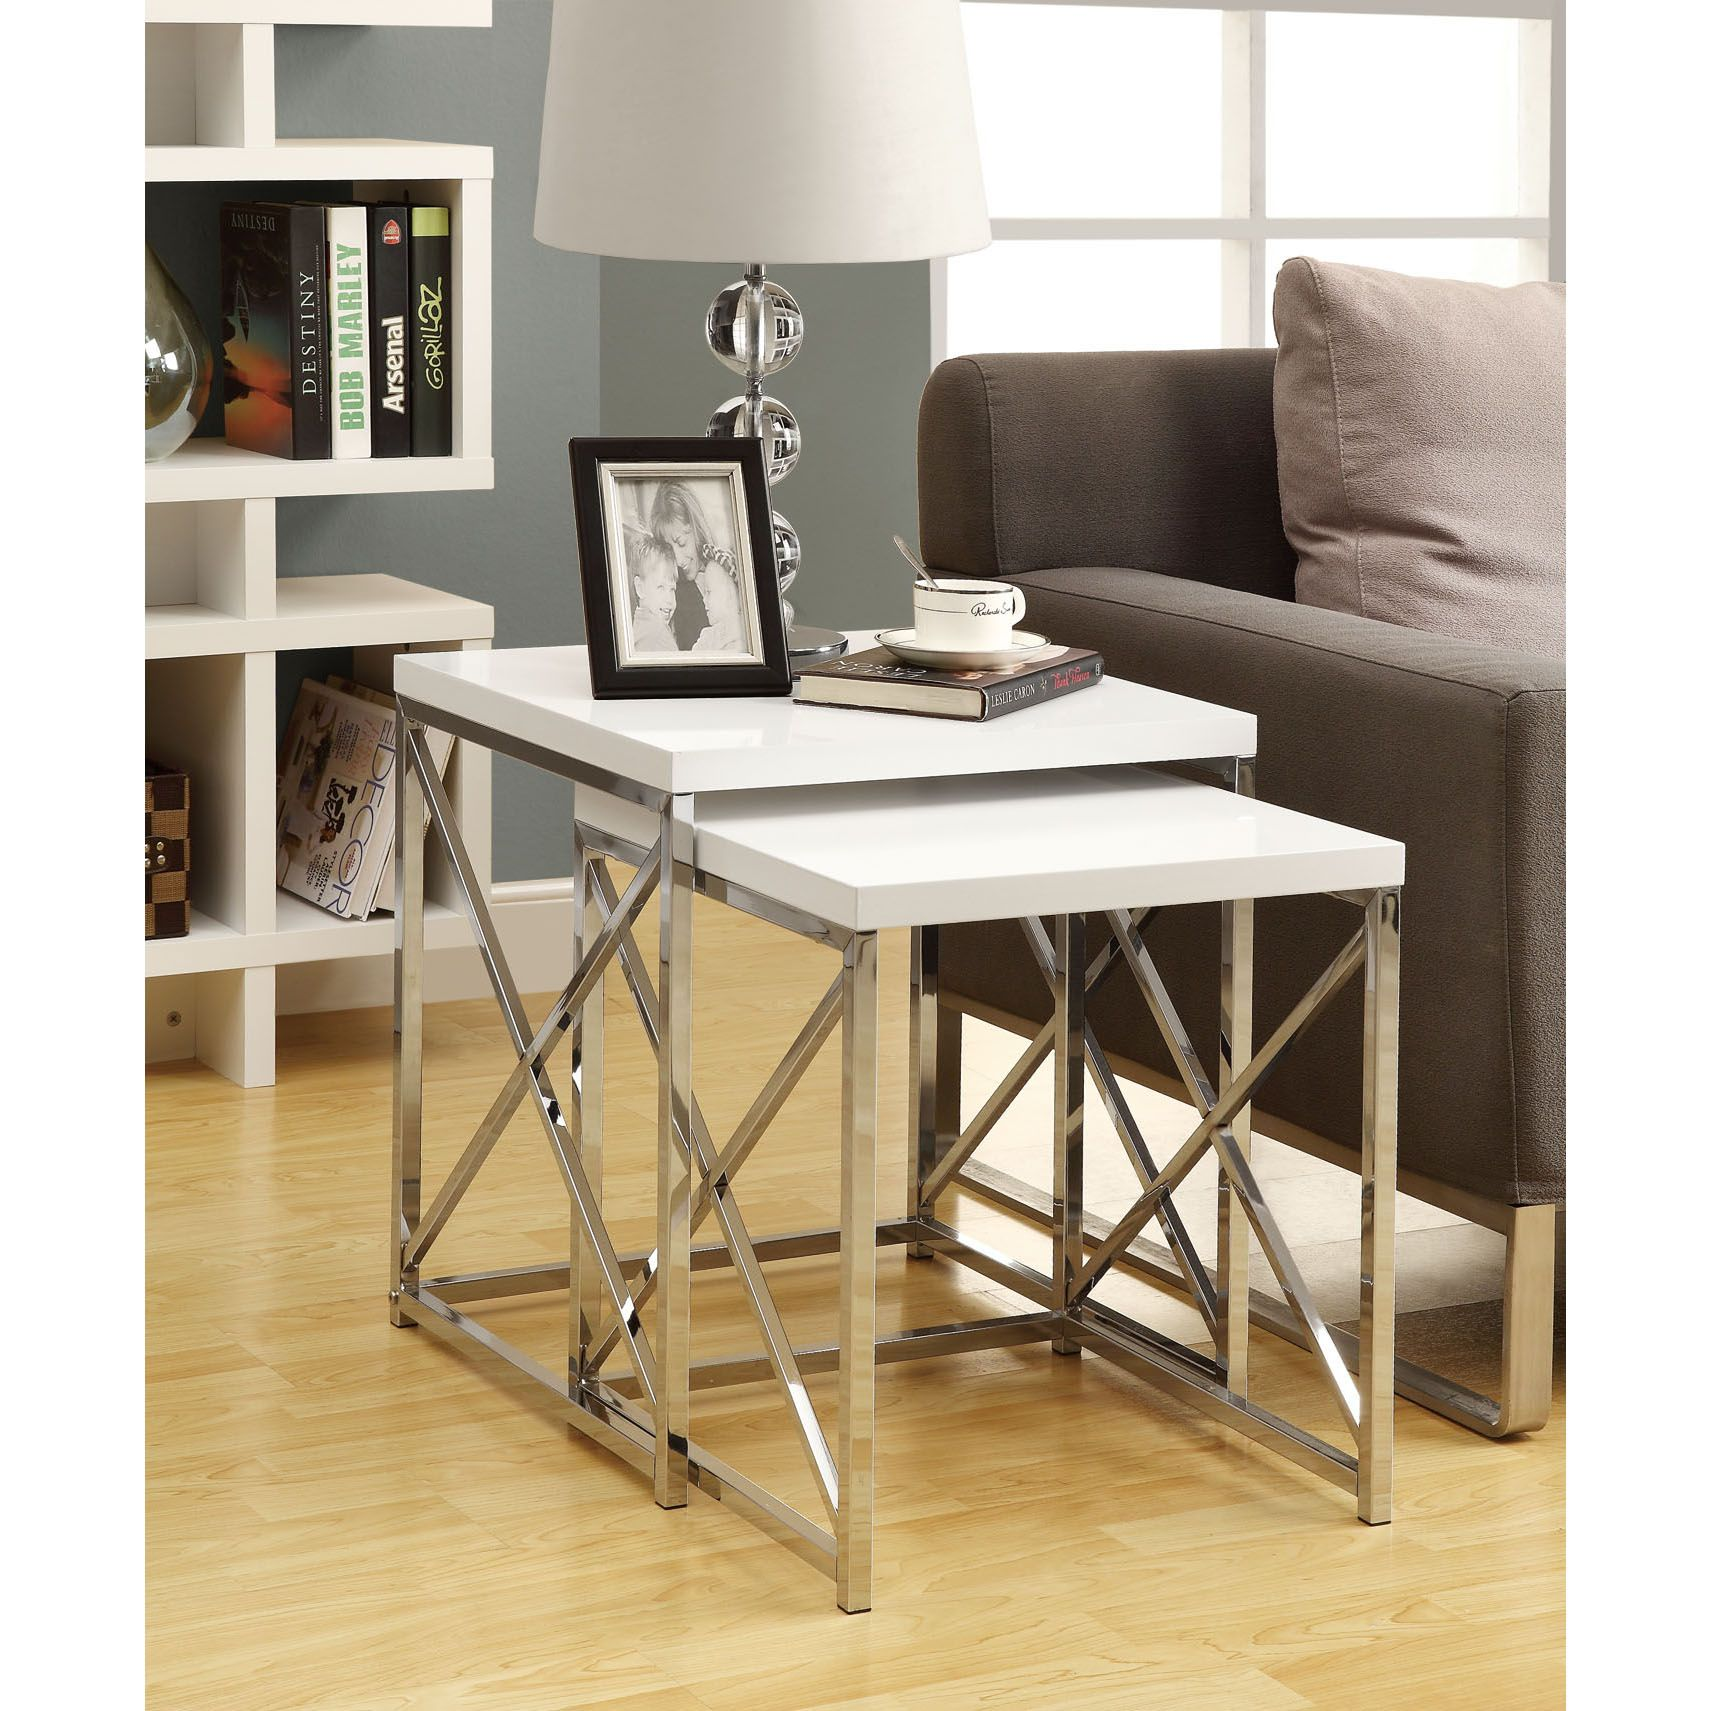 Use this set of 2 gloss white chrome metal nesting tables in a